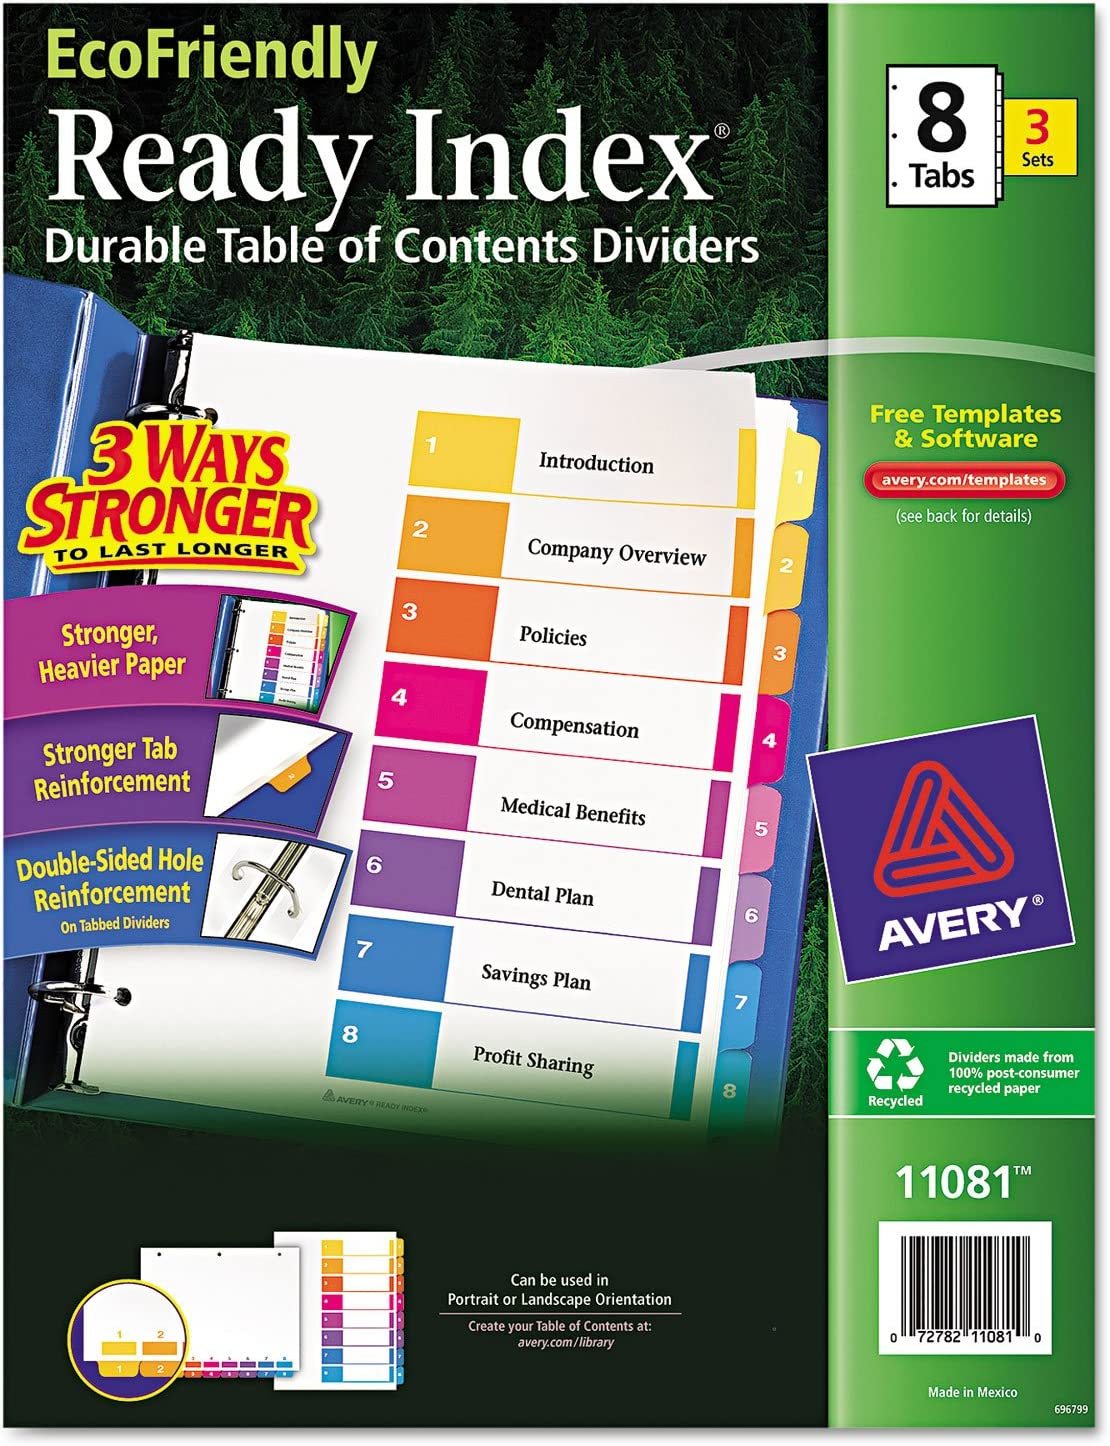 Avery Ready Index Customizable Table Contents Genuine Free shipping Free Shipping of Asst Dividers